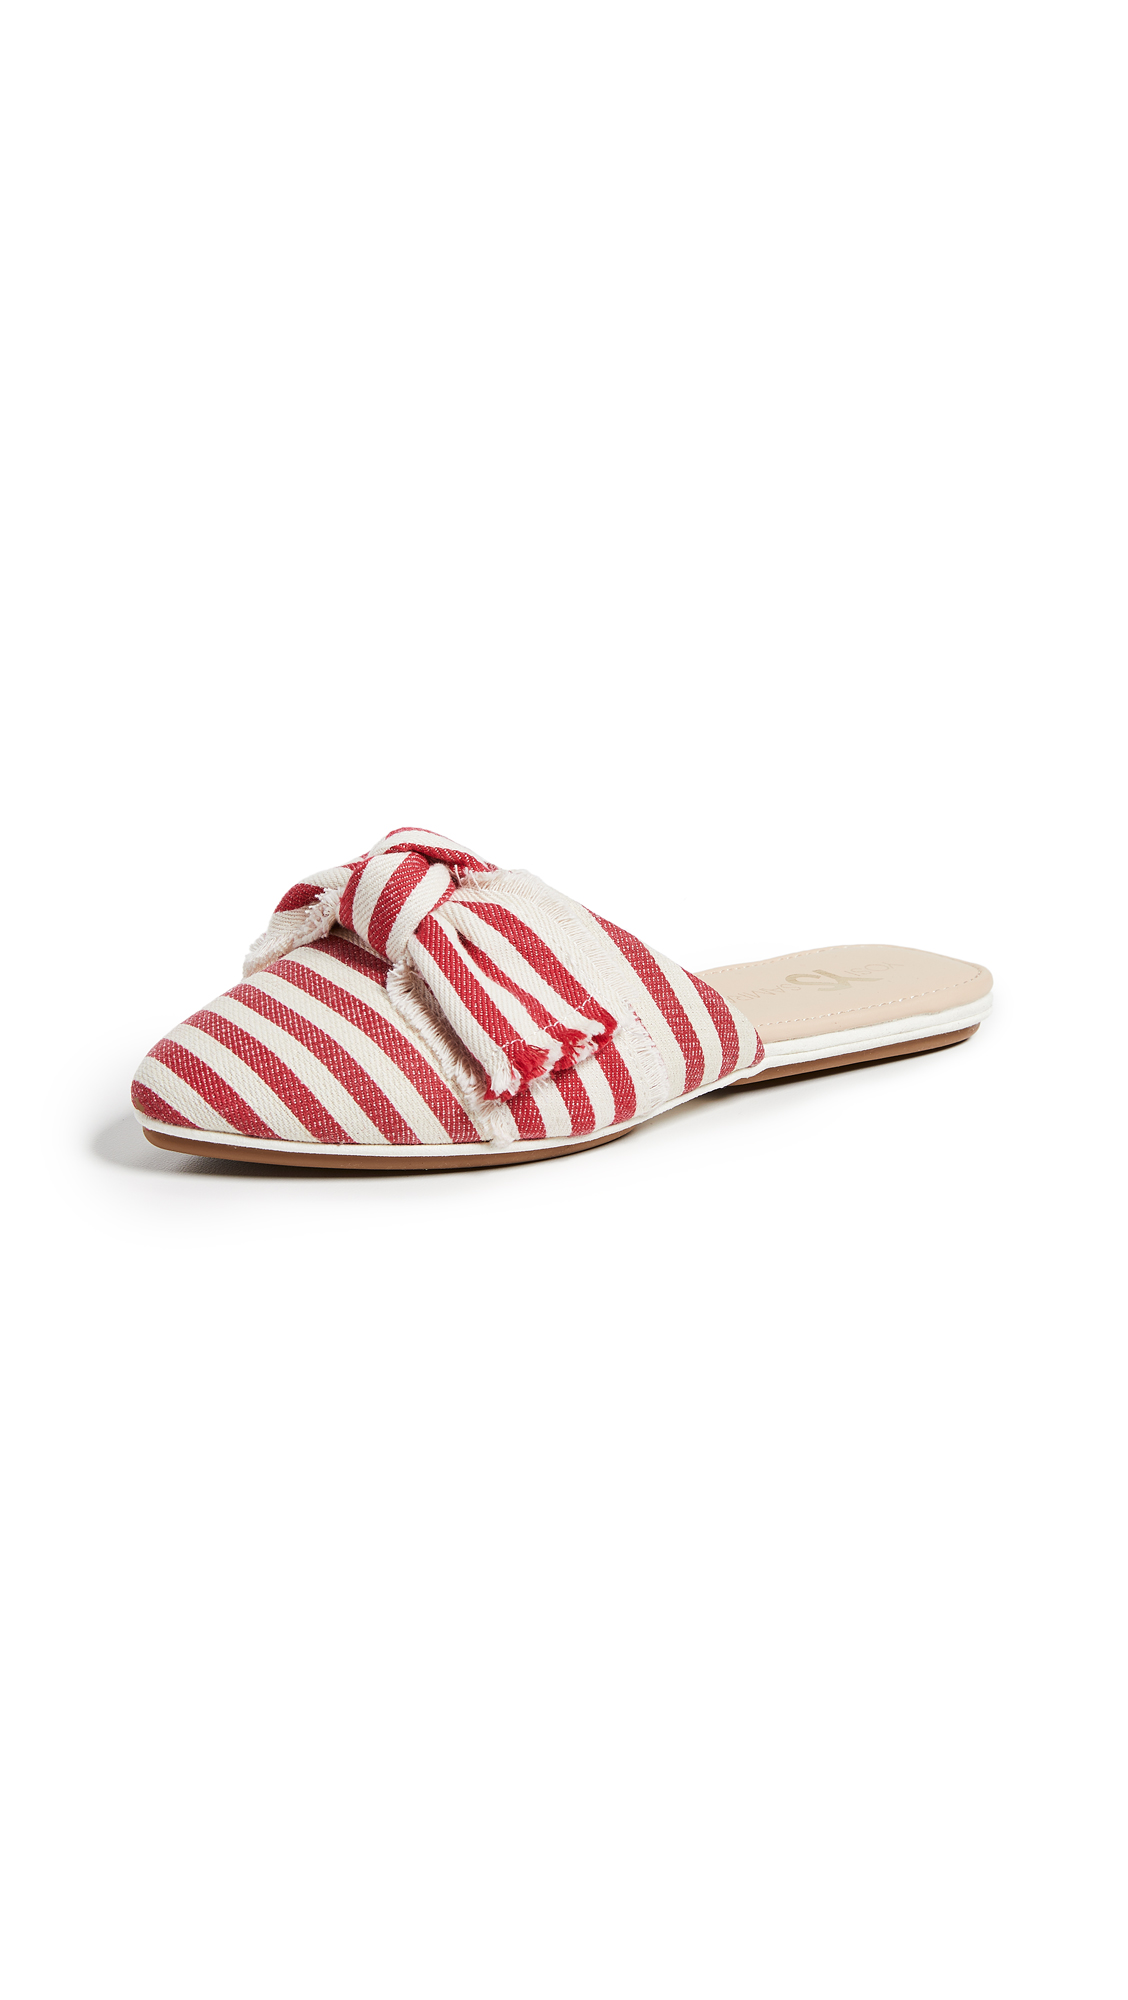 Yosi Samra Vicery Point Toe Flats - Red/Natural